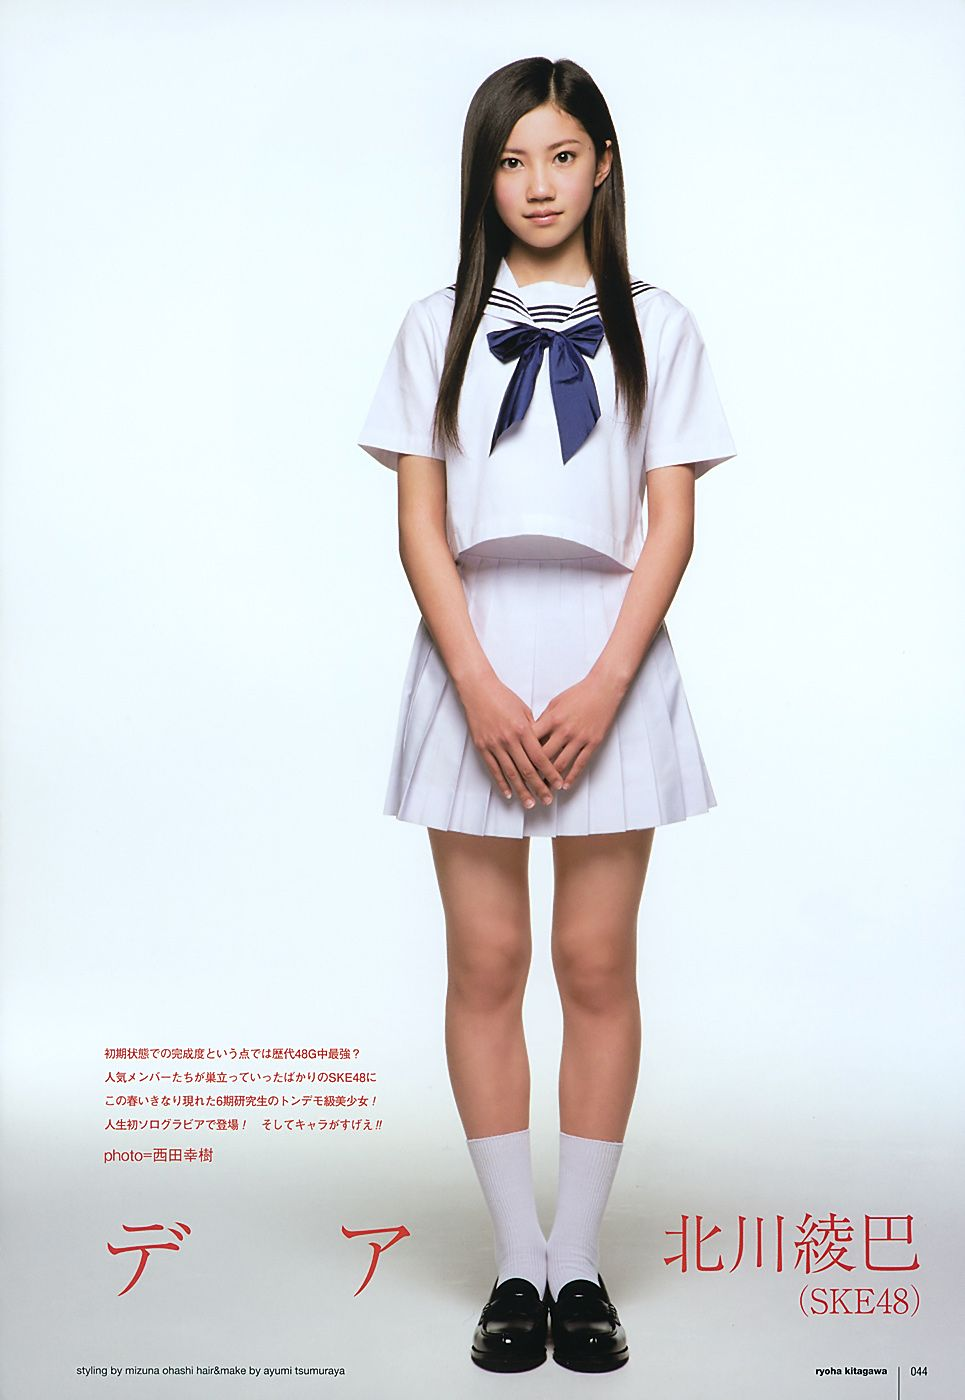 Think, that Japanese junior idol models